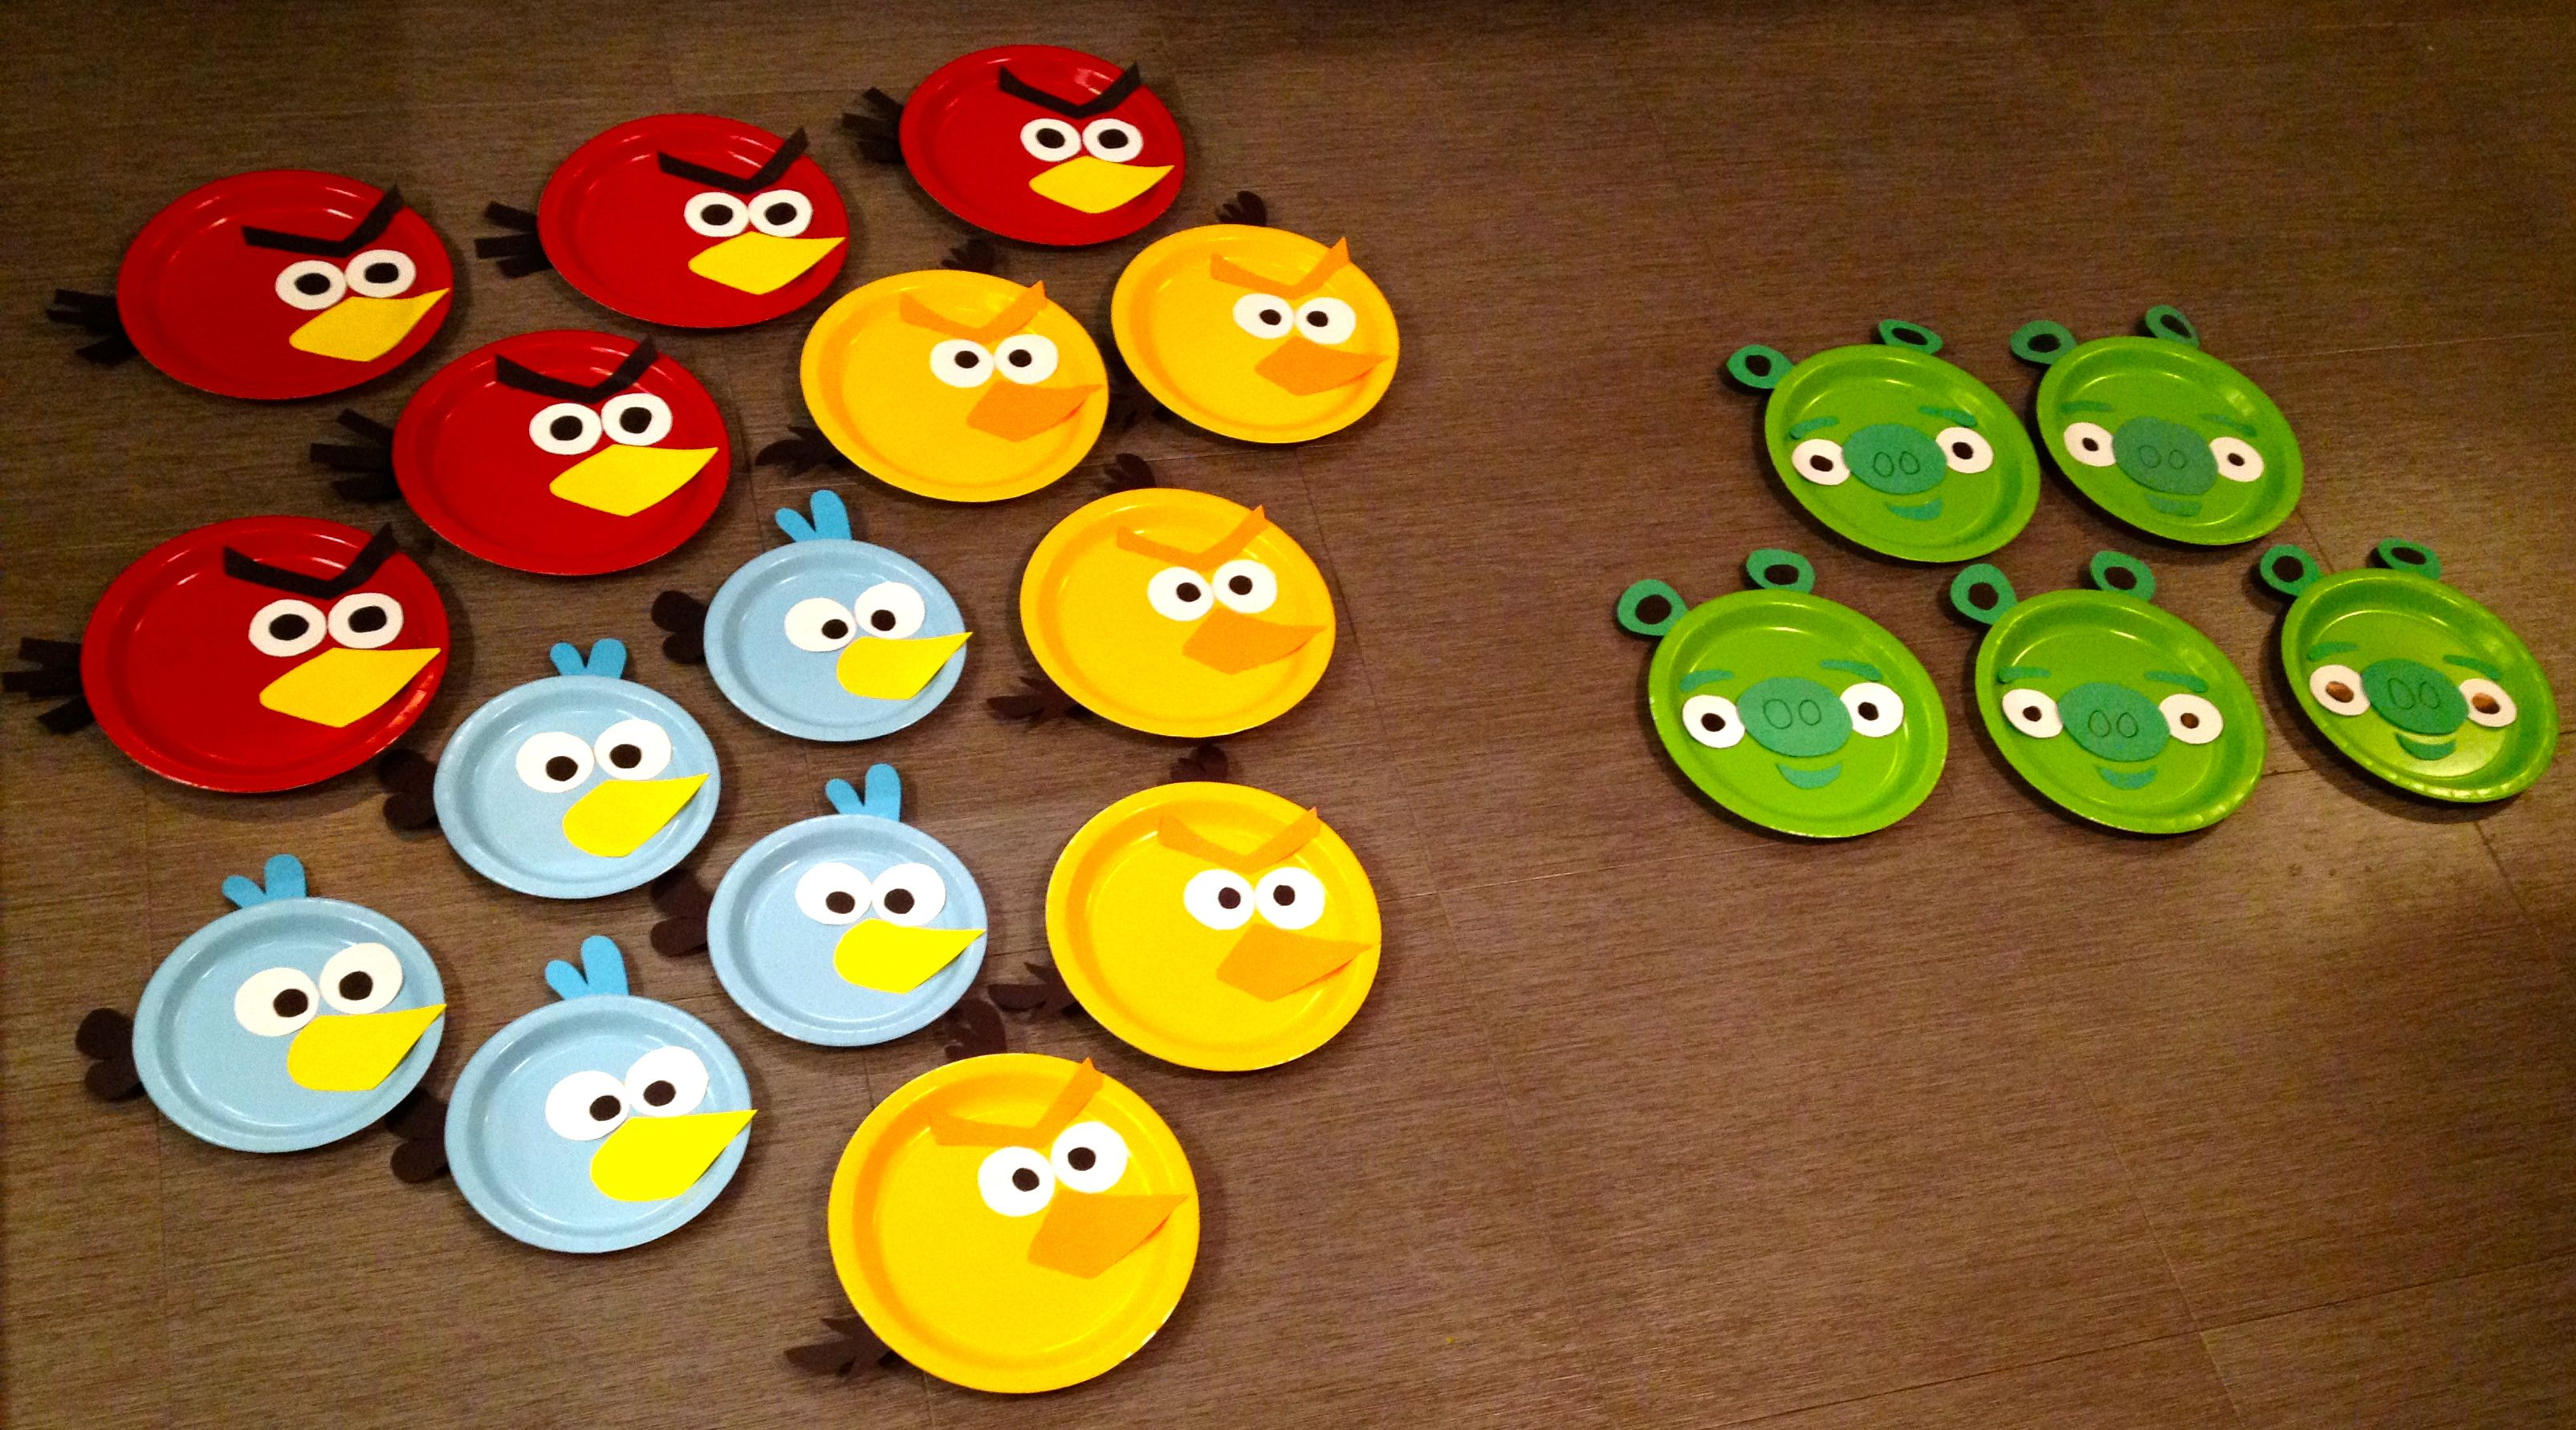 Angry birds party decorations angry birds party for Angry birds party decoration ideas